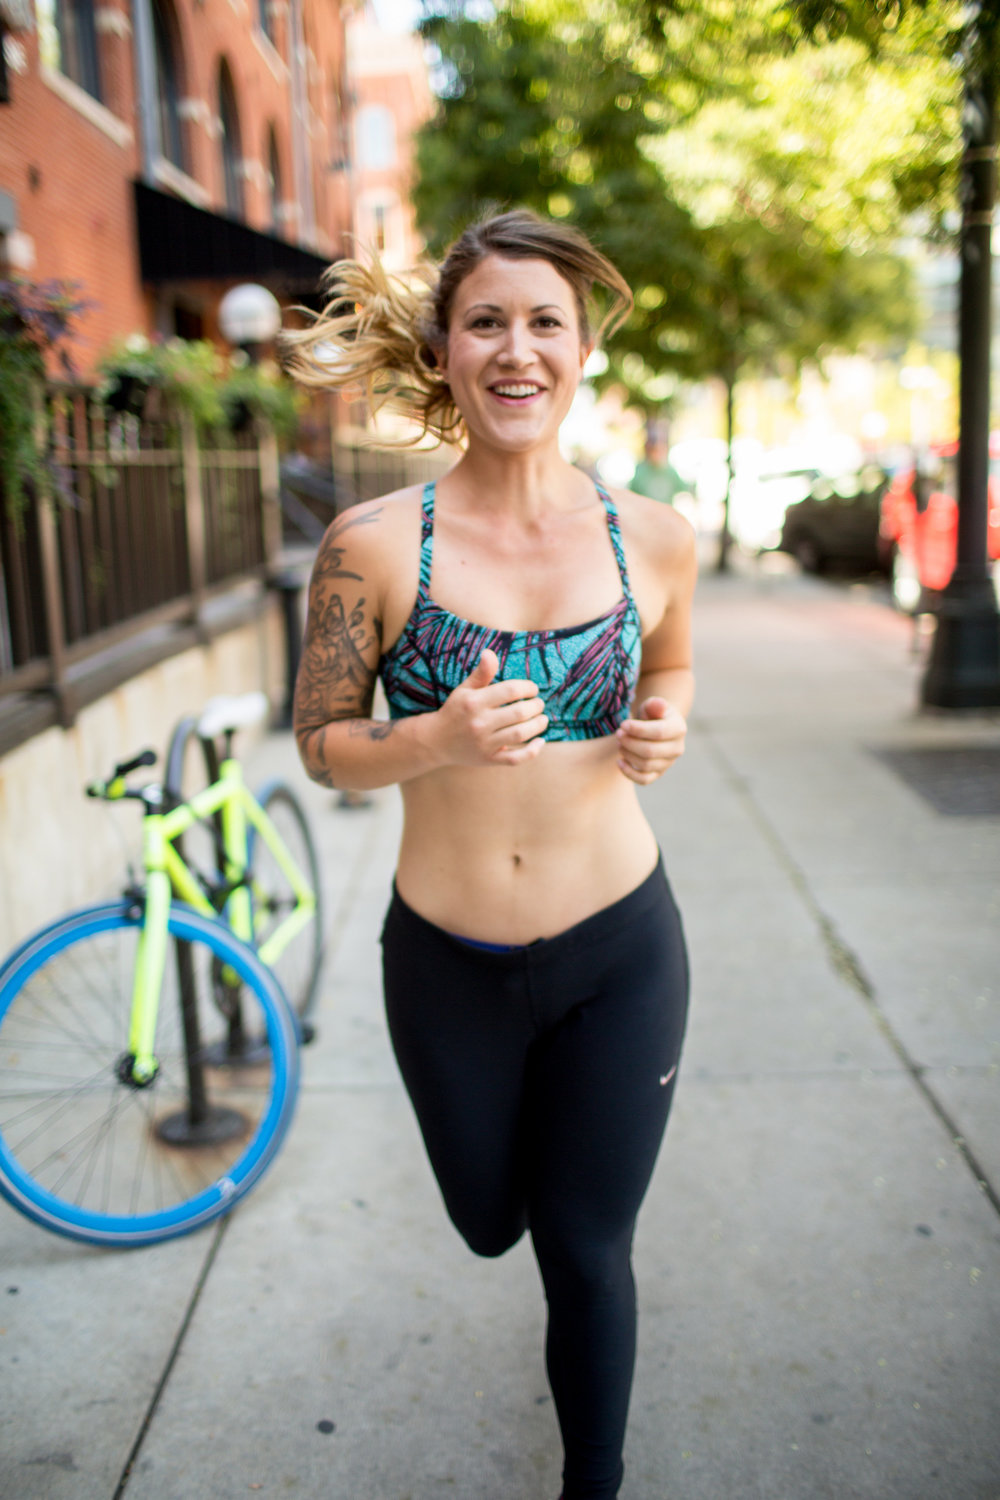 "Desirae   DesiRae began taking classes at BBP in 2012 and her view of having a vibrant body forever changed. Through her love of health, fitness and nutrition, BBP gave her just what she didn't know she was looking for to create a STRONG body, while having fun.   ""The more you take care of your mind, body and soul, the more it will take care of you.""   Experience: • Strength and Functional Training Certified, Beast Mode Athletics 2016 • CPR/AED/First Aid Certified • Certified Yoga Instructor  Education: • Metropolitan State University of Denver, BA in Psychology and Behavioral Science with Sports Nutrition and Integrative Health Care Minors • Certified Holistic Health and Wellness Coach, Health Coach Institute"